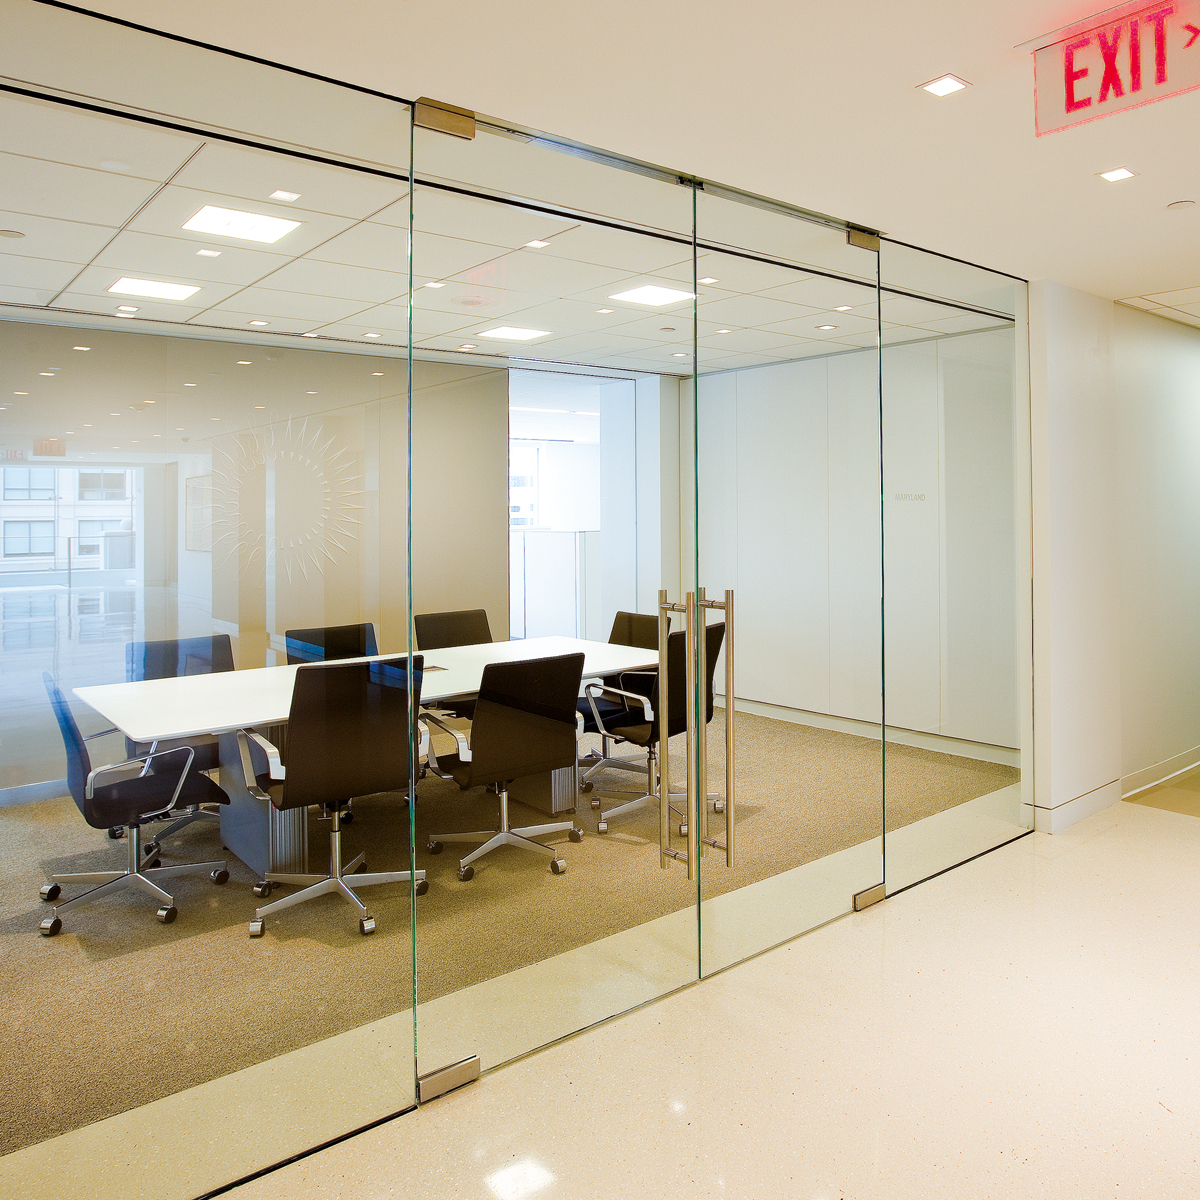 Dormakaba interior glass wall systems transparency and for Glass walls